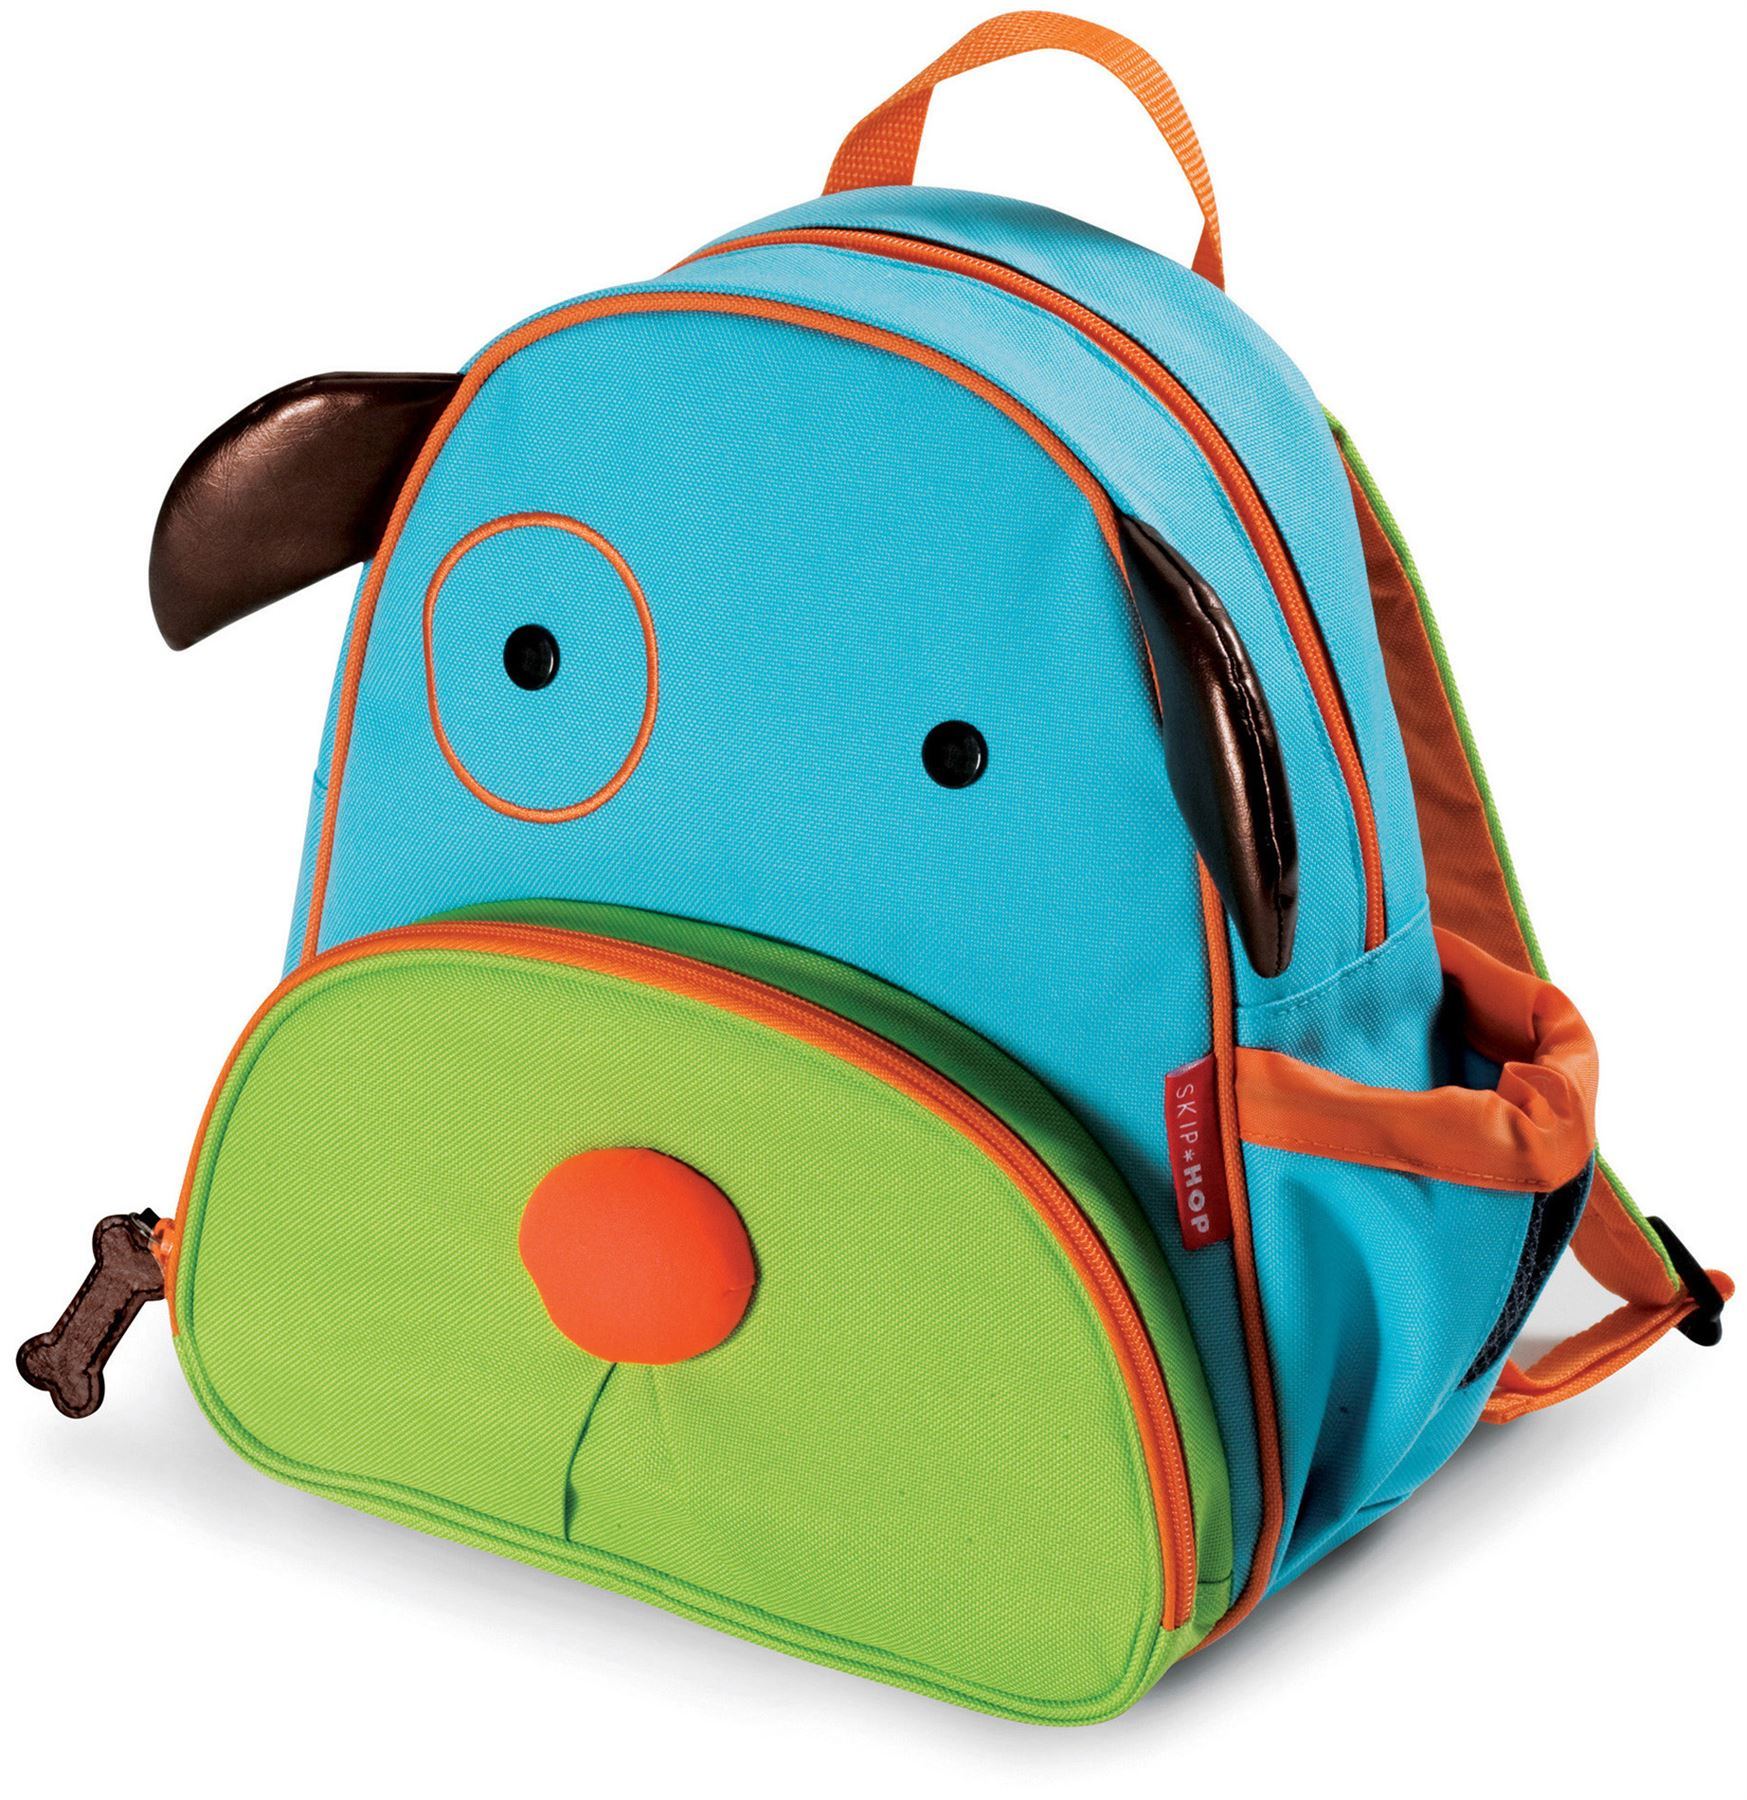 Skip Hop ZOO LITTLE KID BACK PACK BEE Kids Clothes Accessories Bags BN